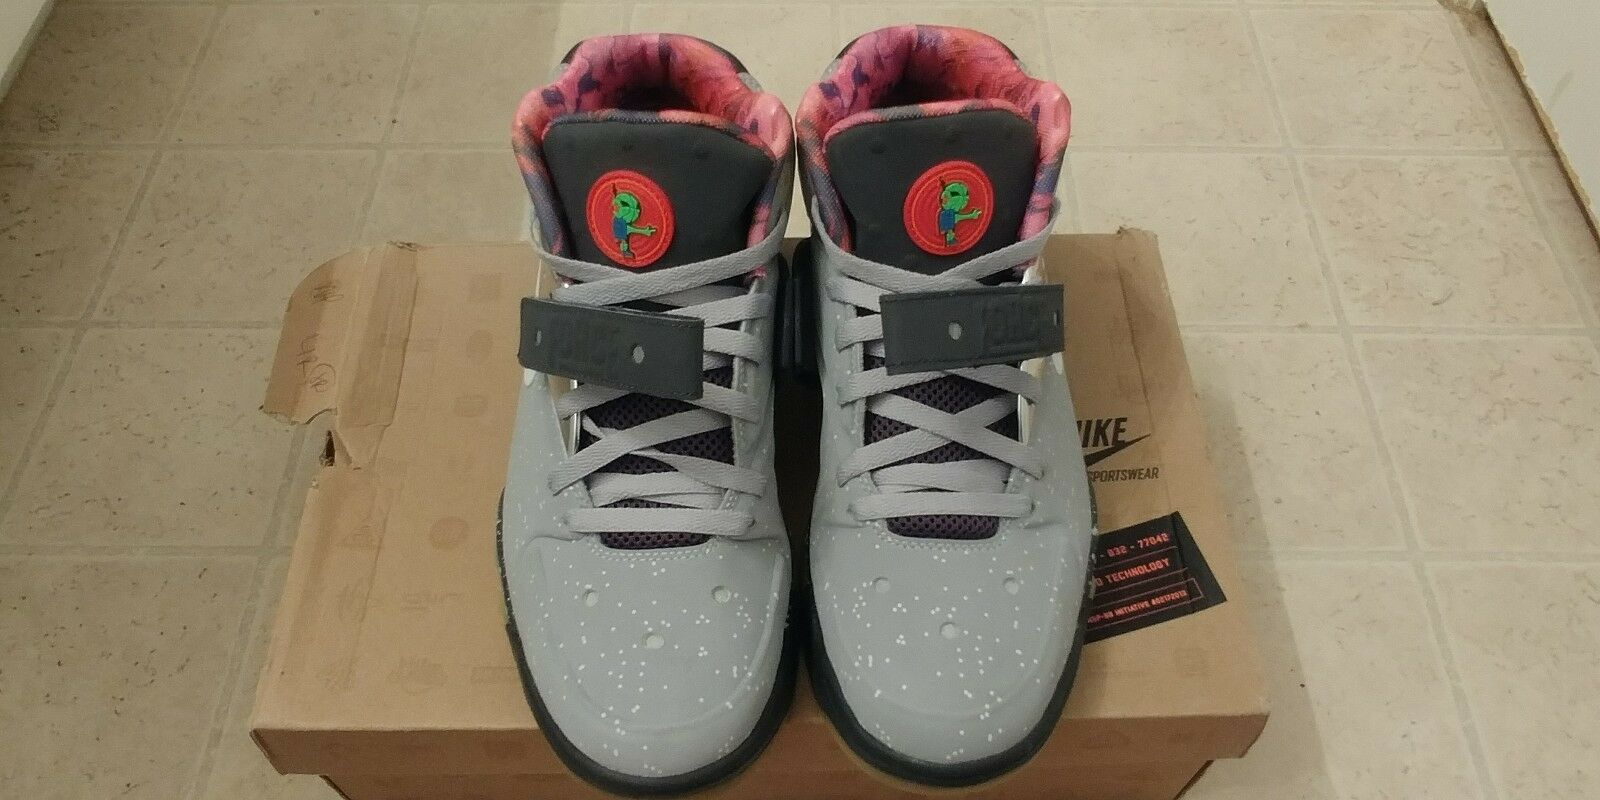 Nike Air Force Mac 2018 Prm QS size 11 Area 72 Wild casual shoes